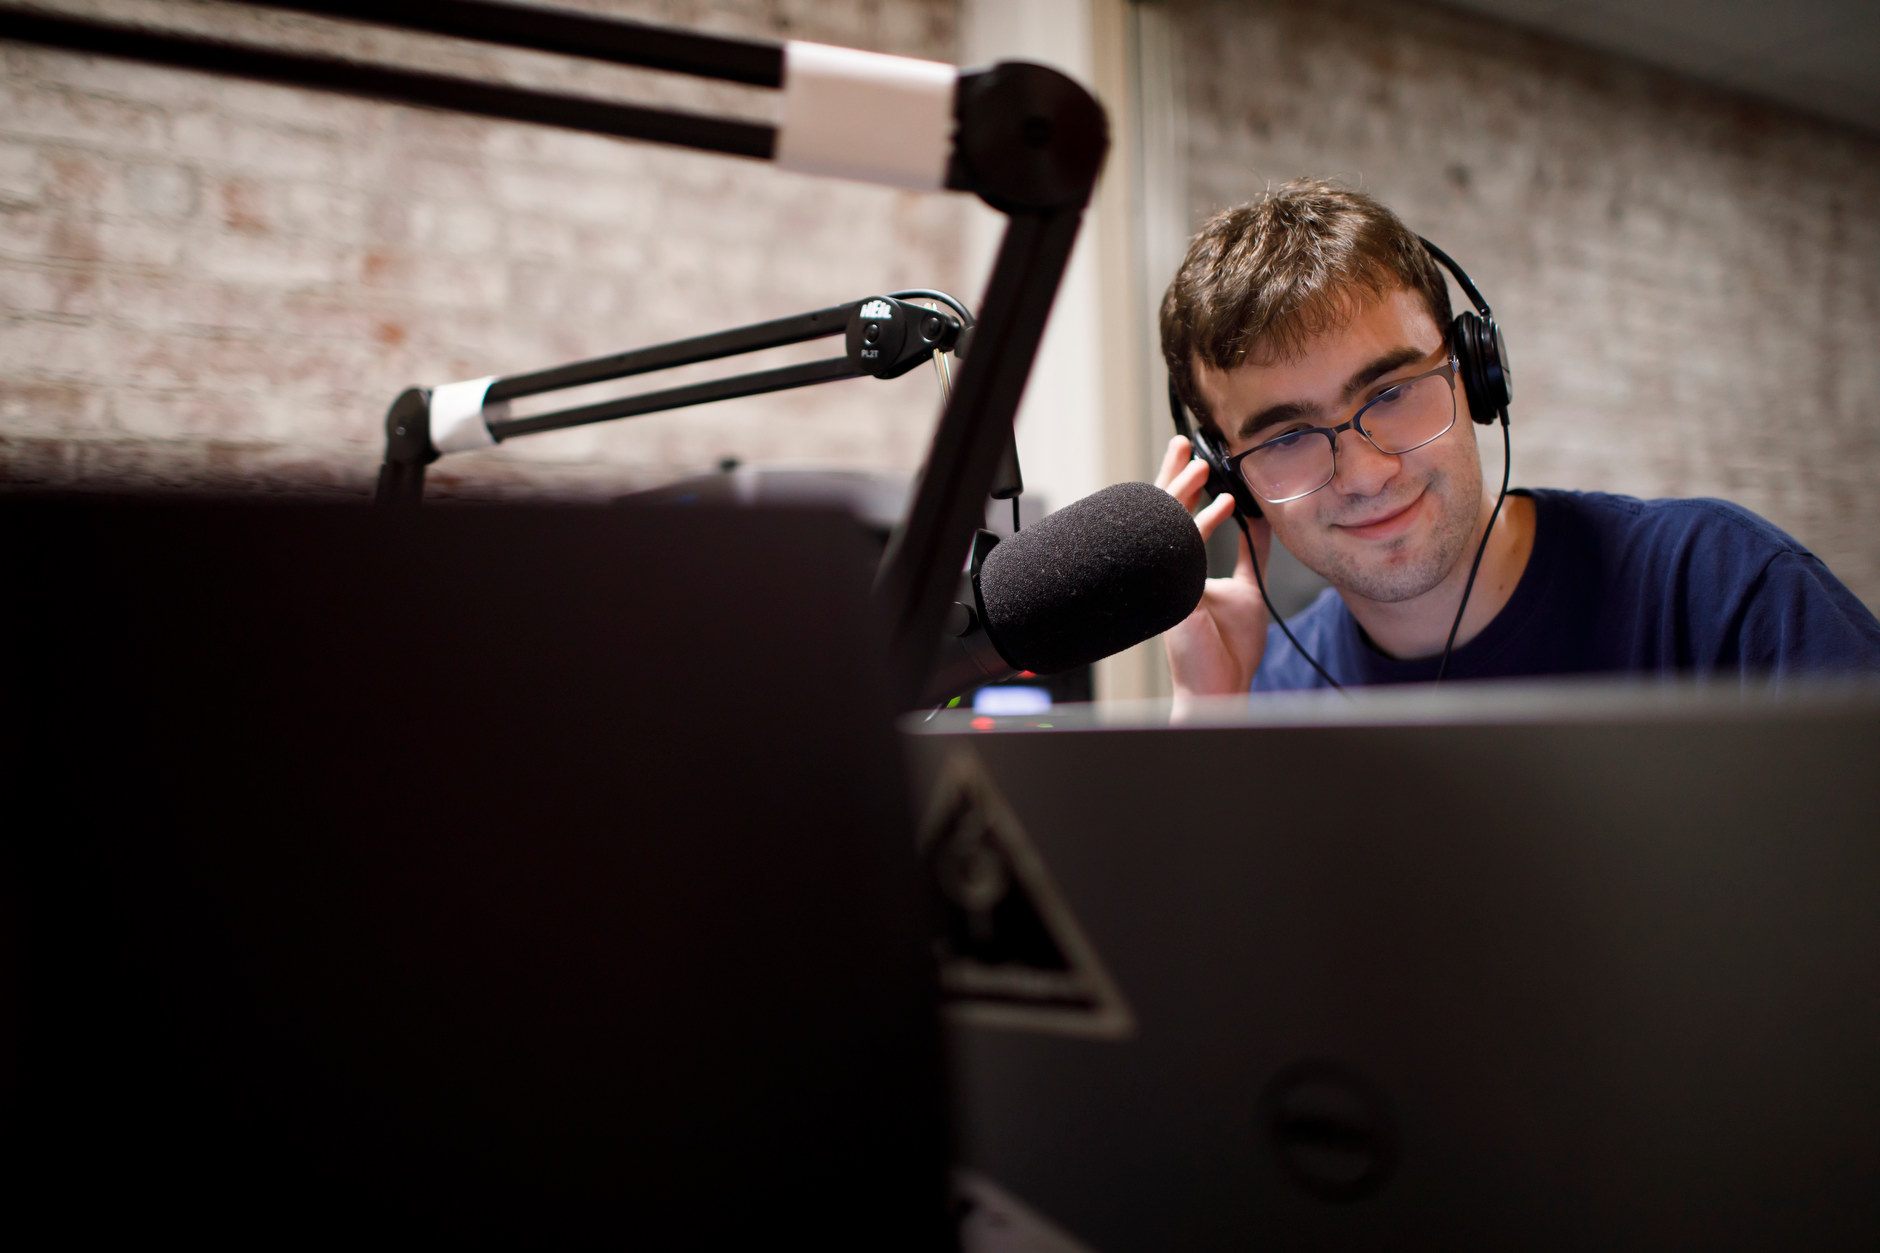 Patrick Spanier interviews a musician on the phone during a live broadcast in the WIUX studios in Franklin Hall on Tuesday, Sept. 25, 2018.